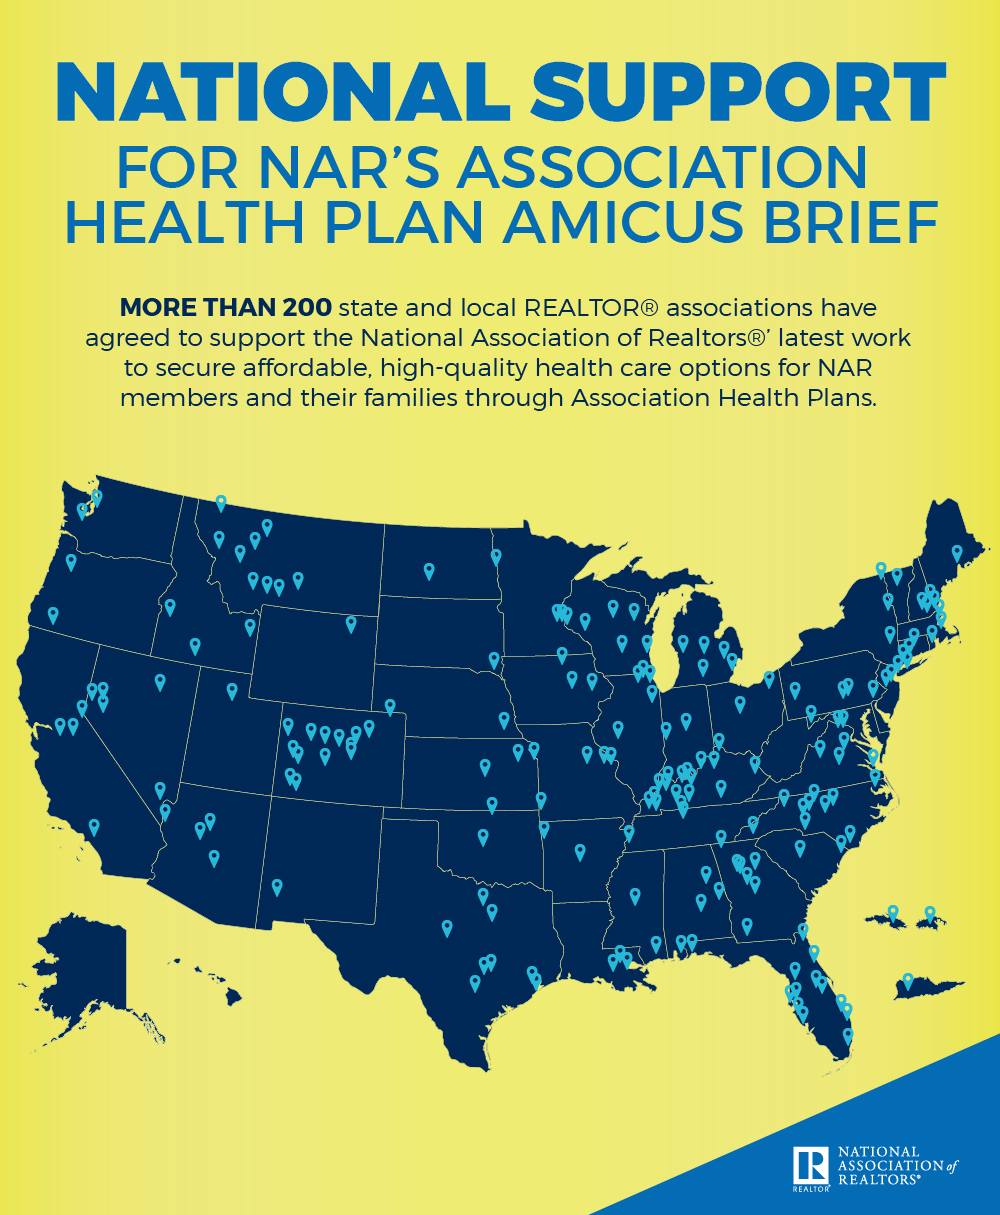 US Map Showing the National Support of State and Local Associations for Association Health Plans